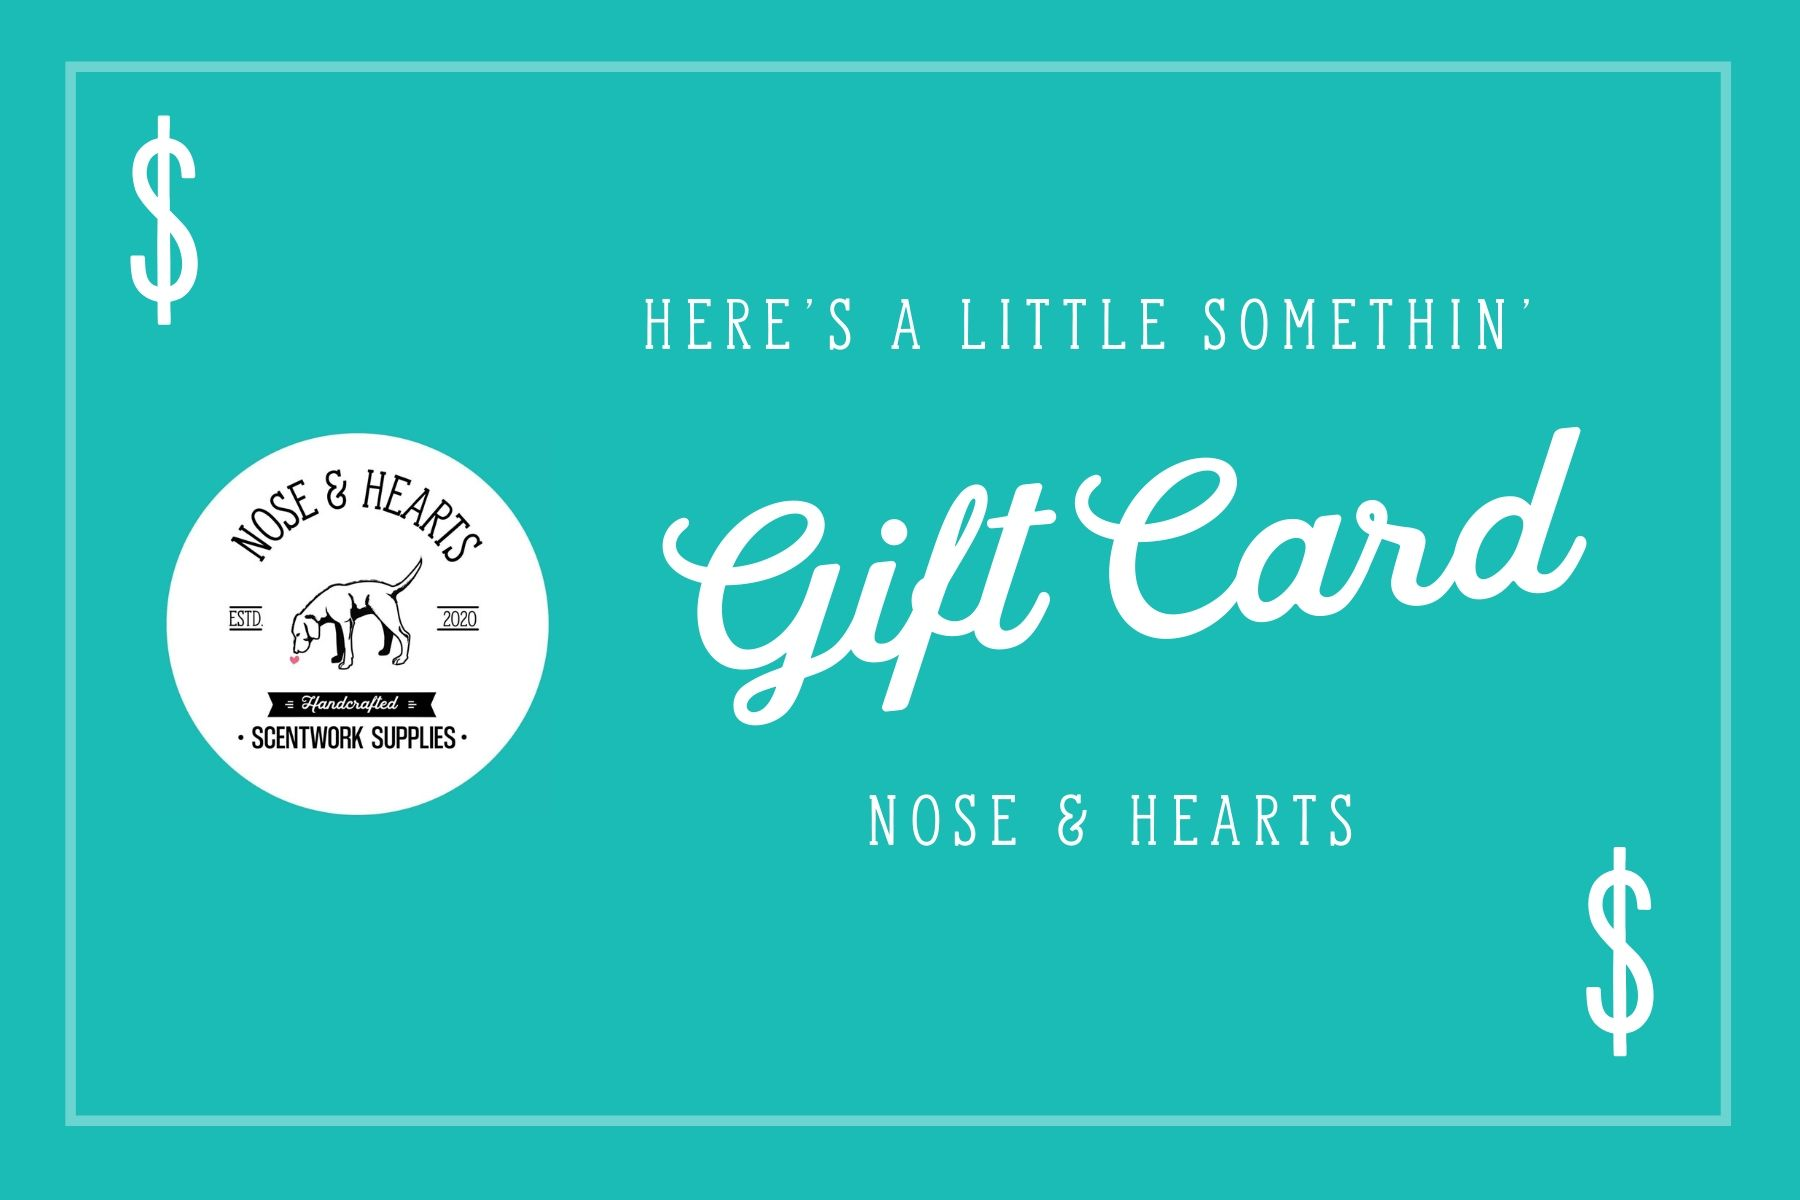 Nose & Hearts Gift Card